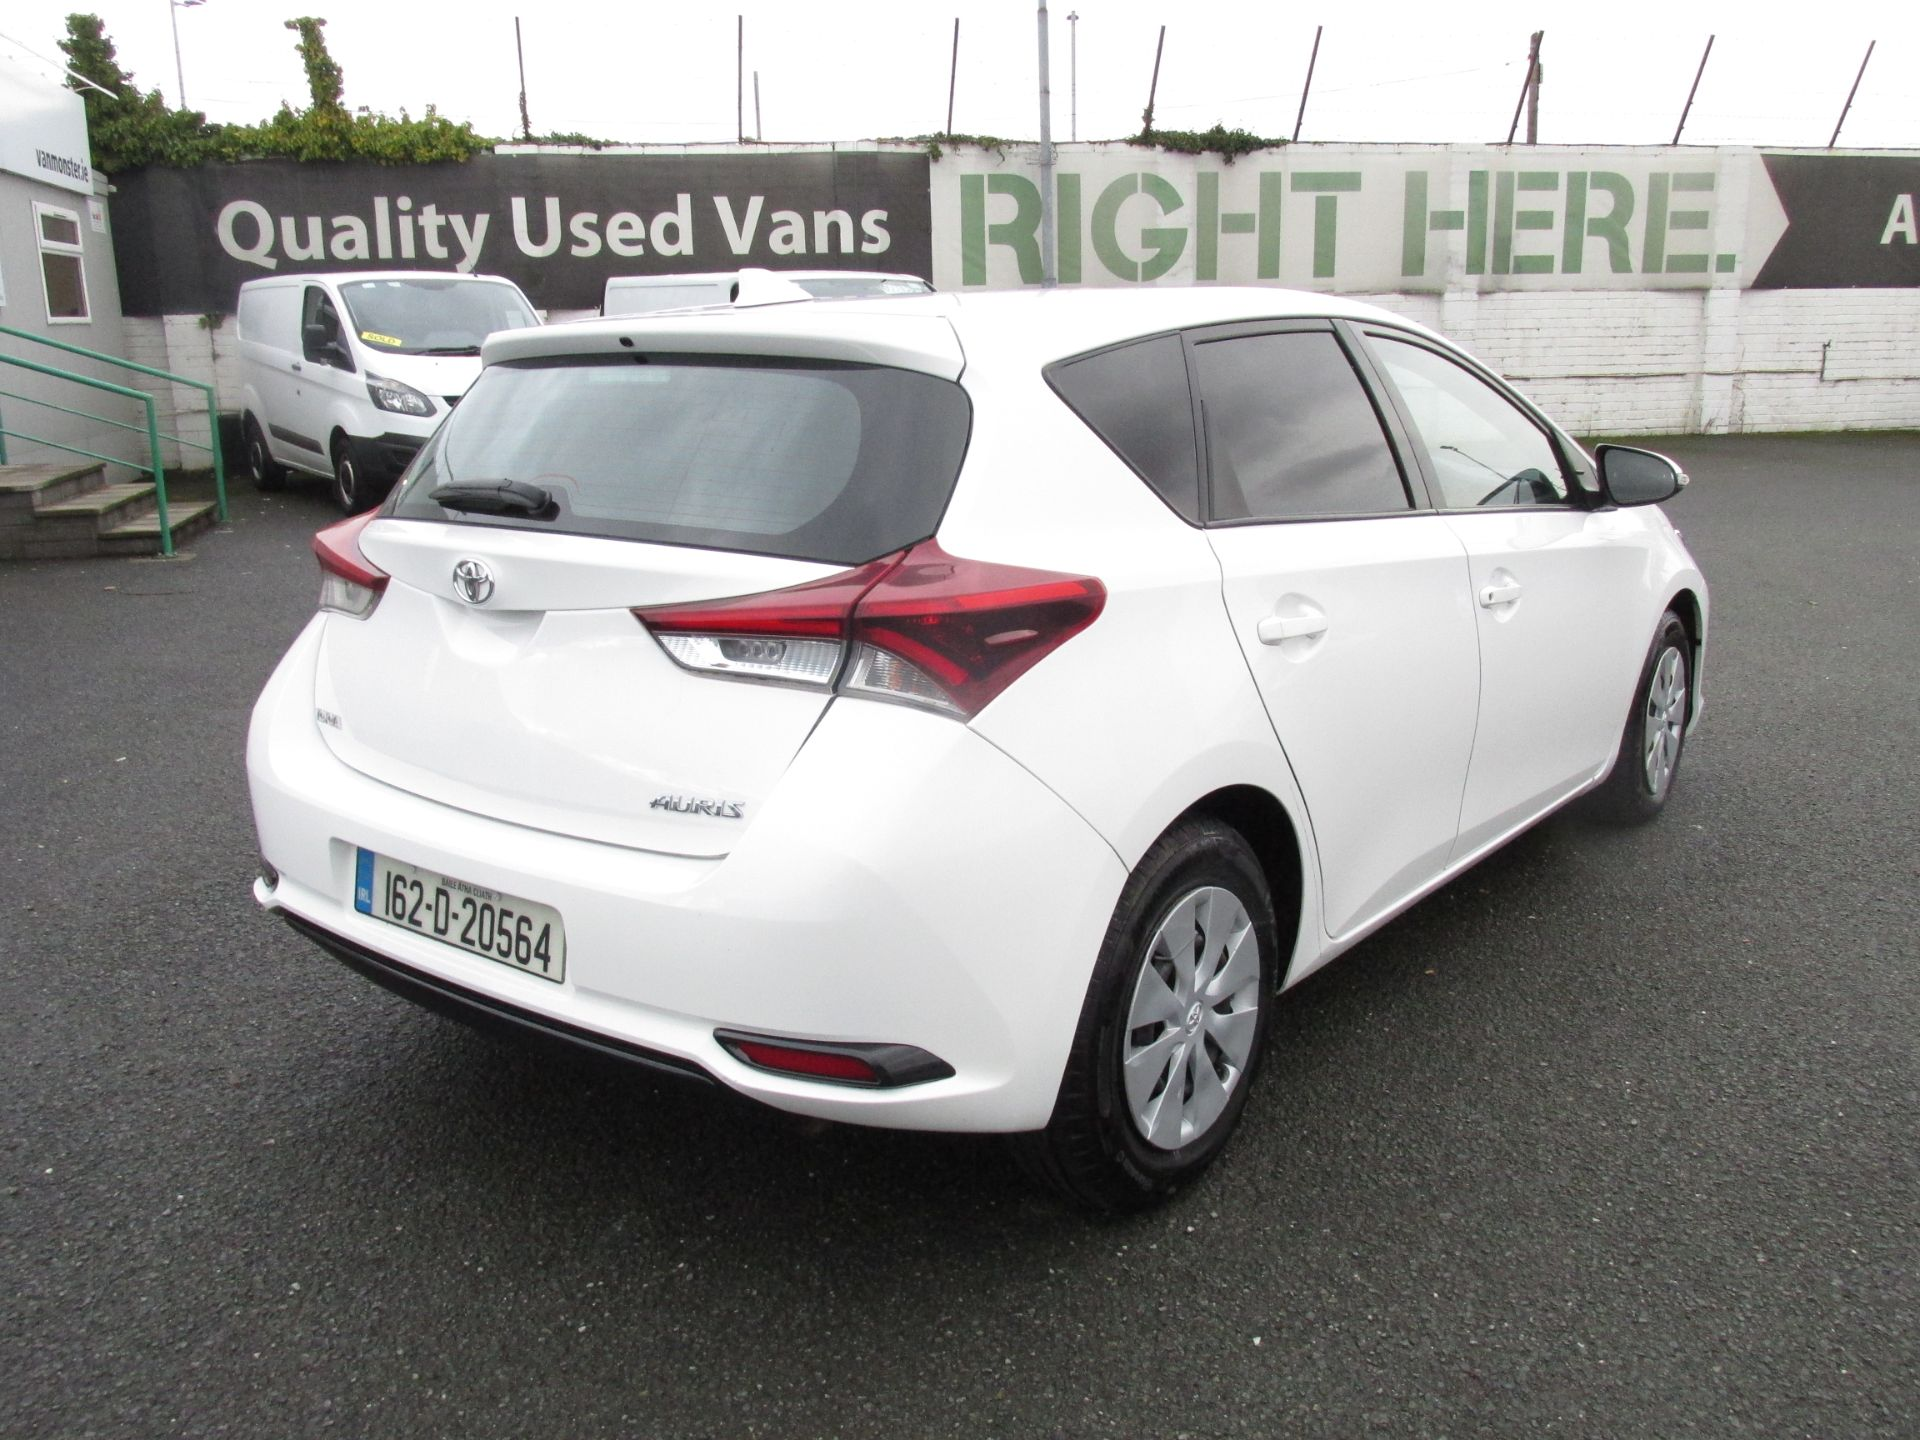 2016 Toyota Auris 1.4d-4d Terra 4DR click and deliver call sales for more info (162D20564) Image 7